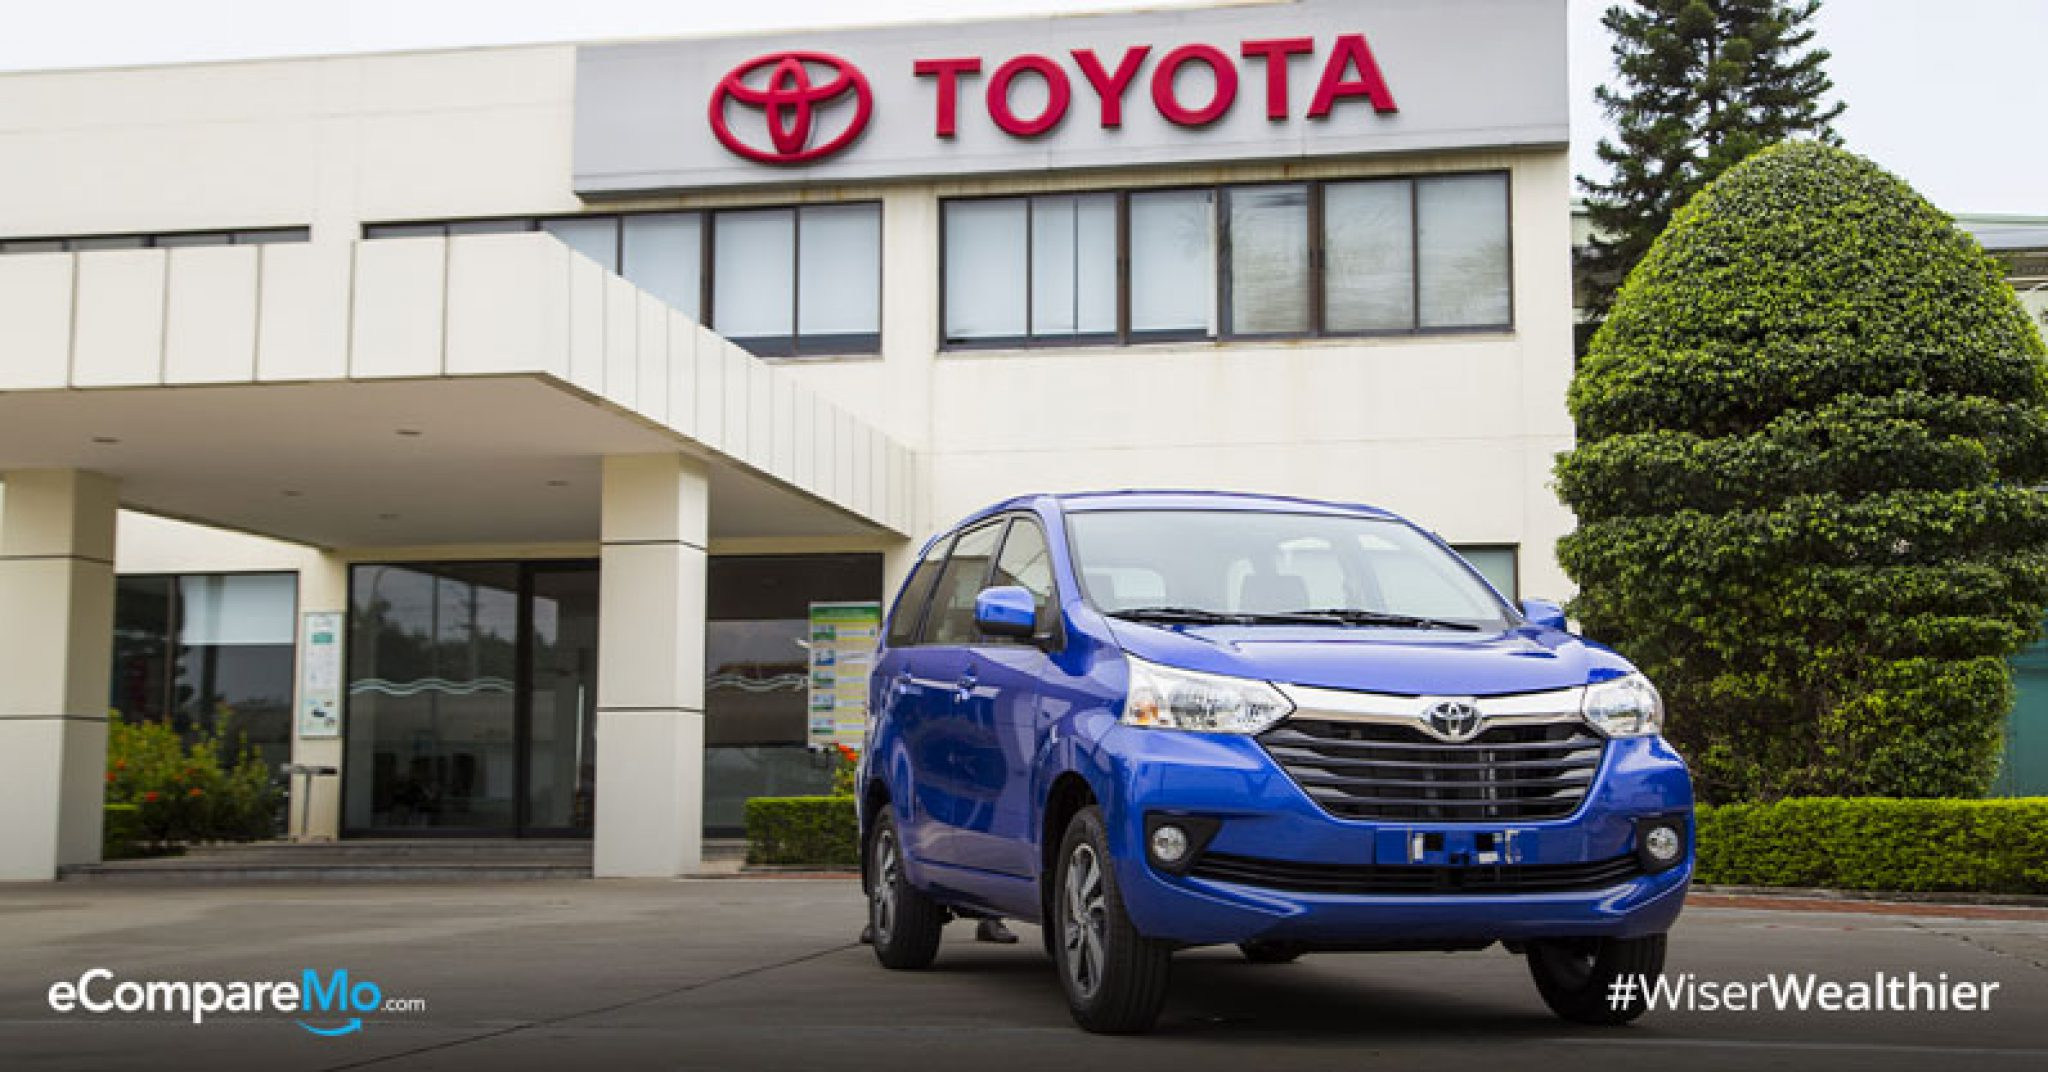 Top 7 Affordable Toyota Cars in the Philippines